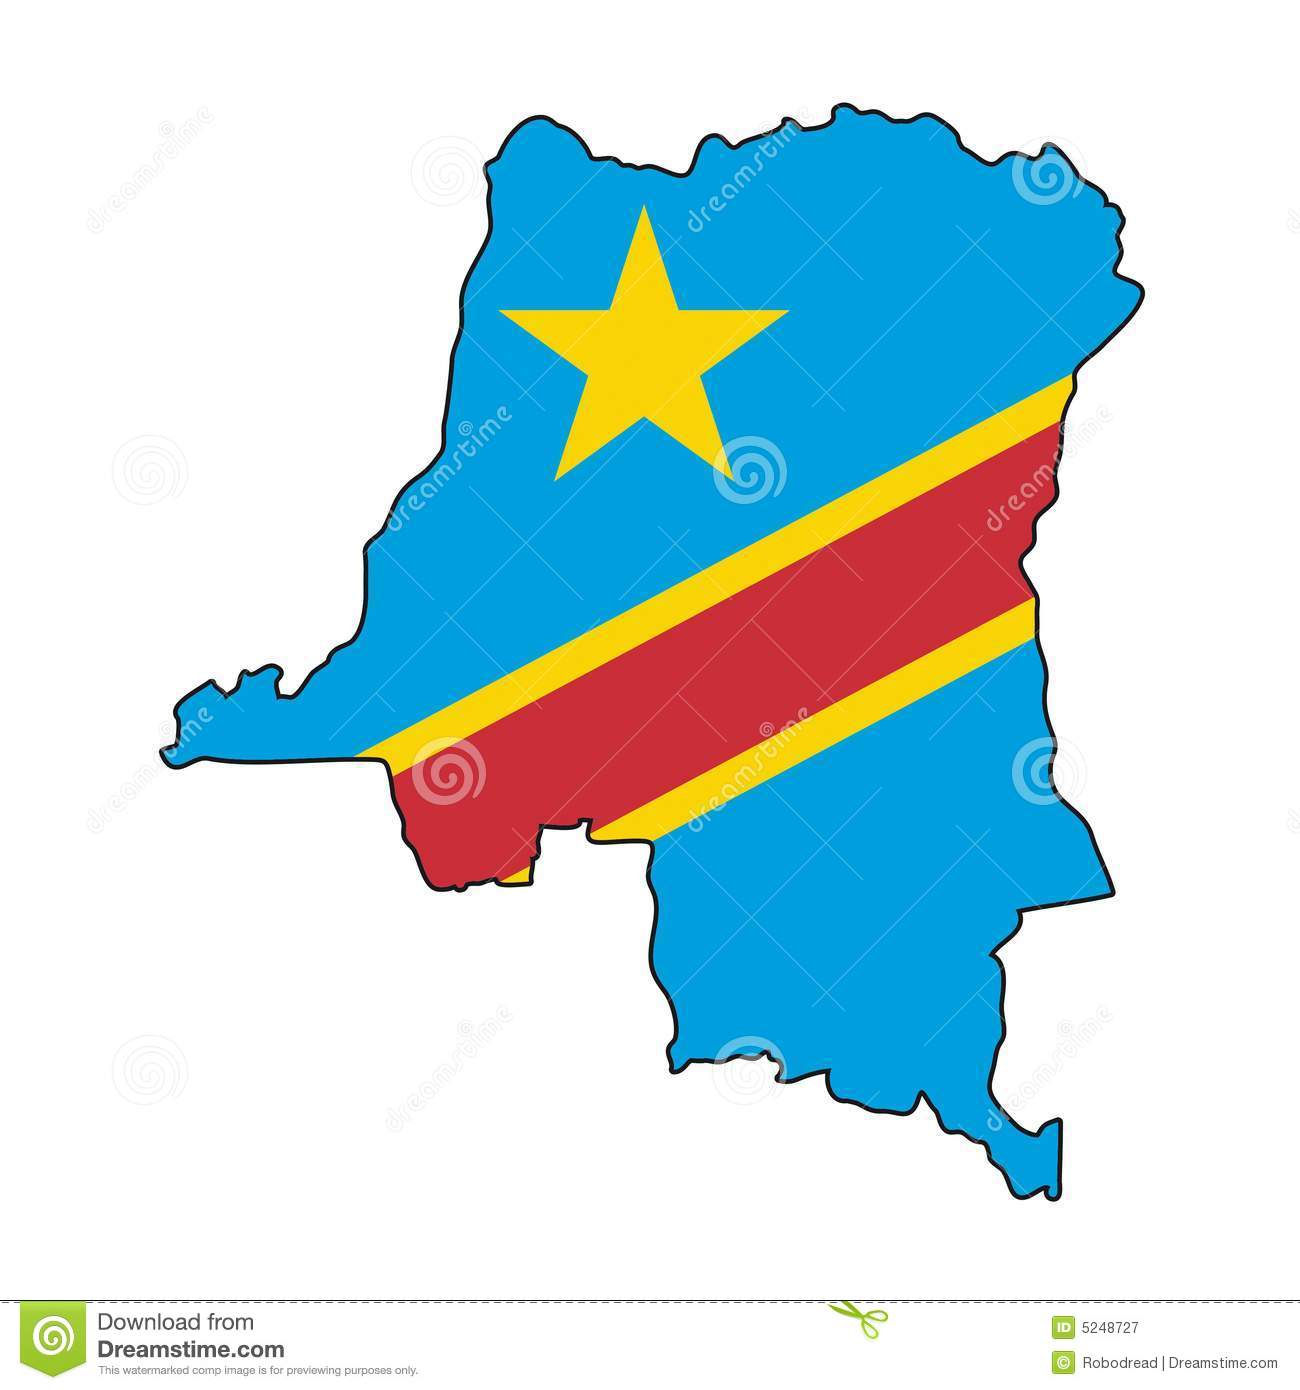 Congo republic of the flag clipart.